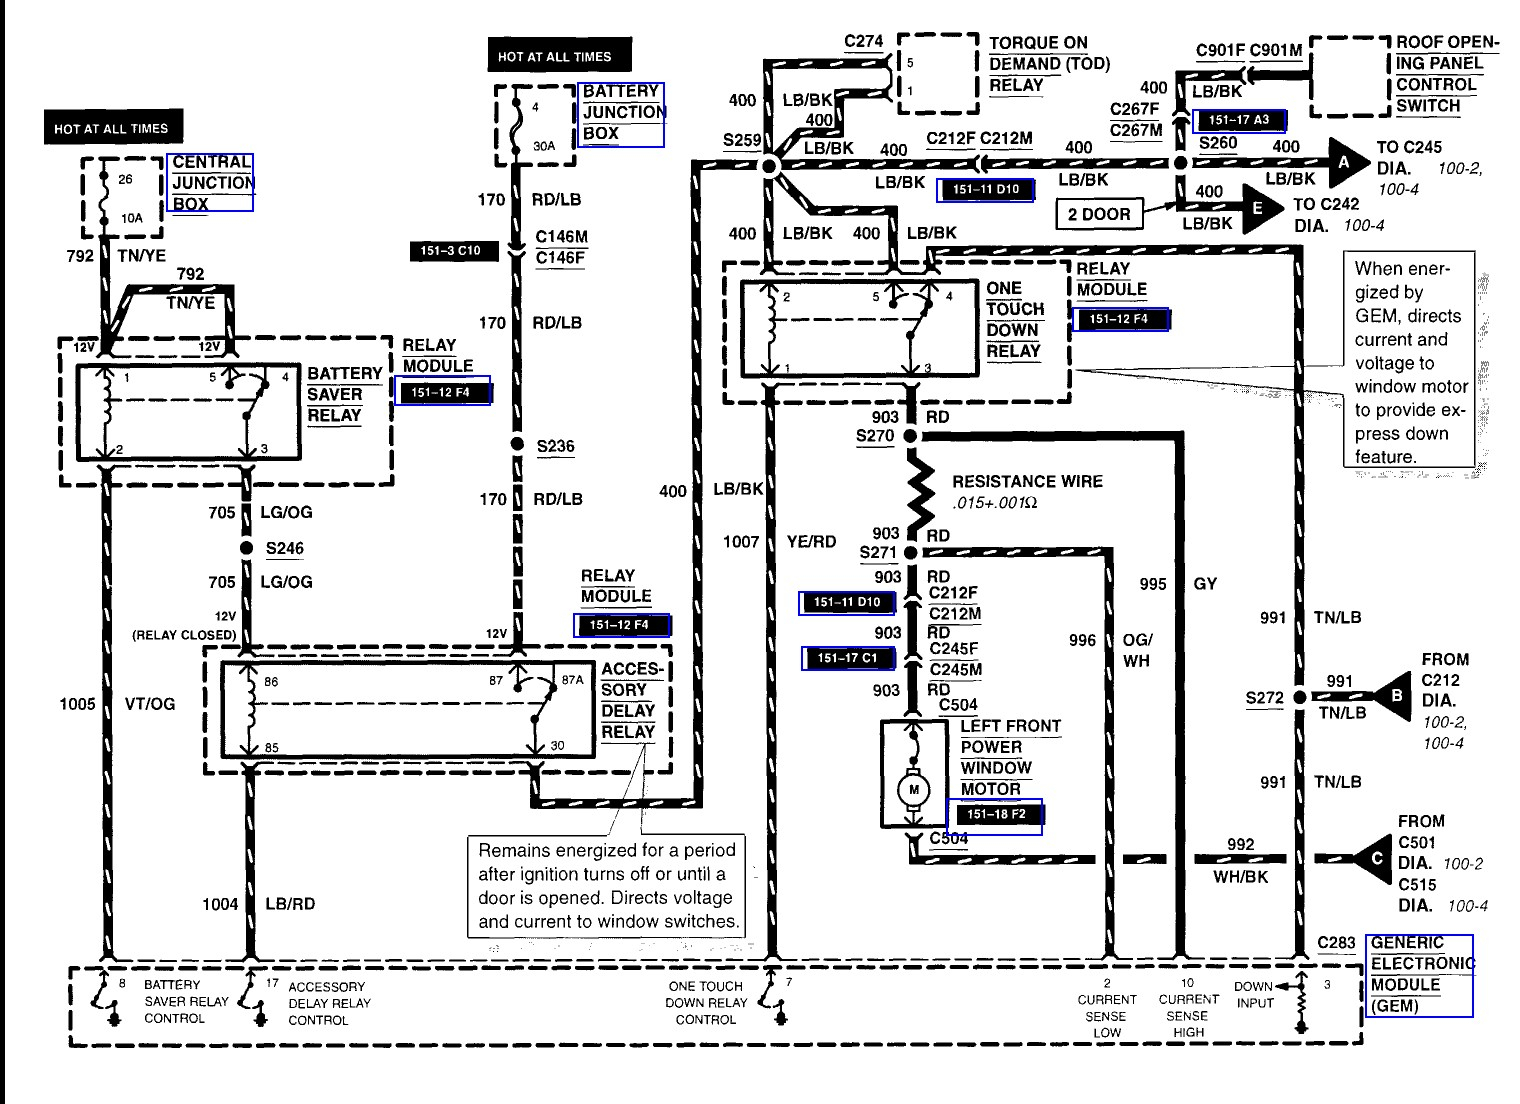 wiring diagram for 2003 ford explorer - wiring diagram schema deep-track -  deep-track.atmosphereconcept.it  atmosphereconcept.it